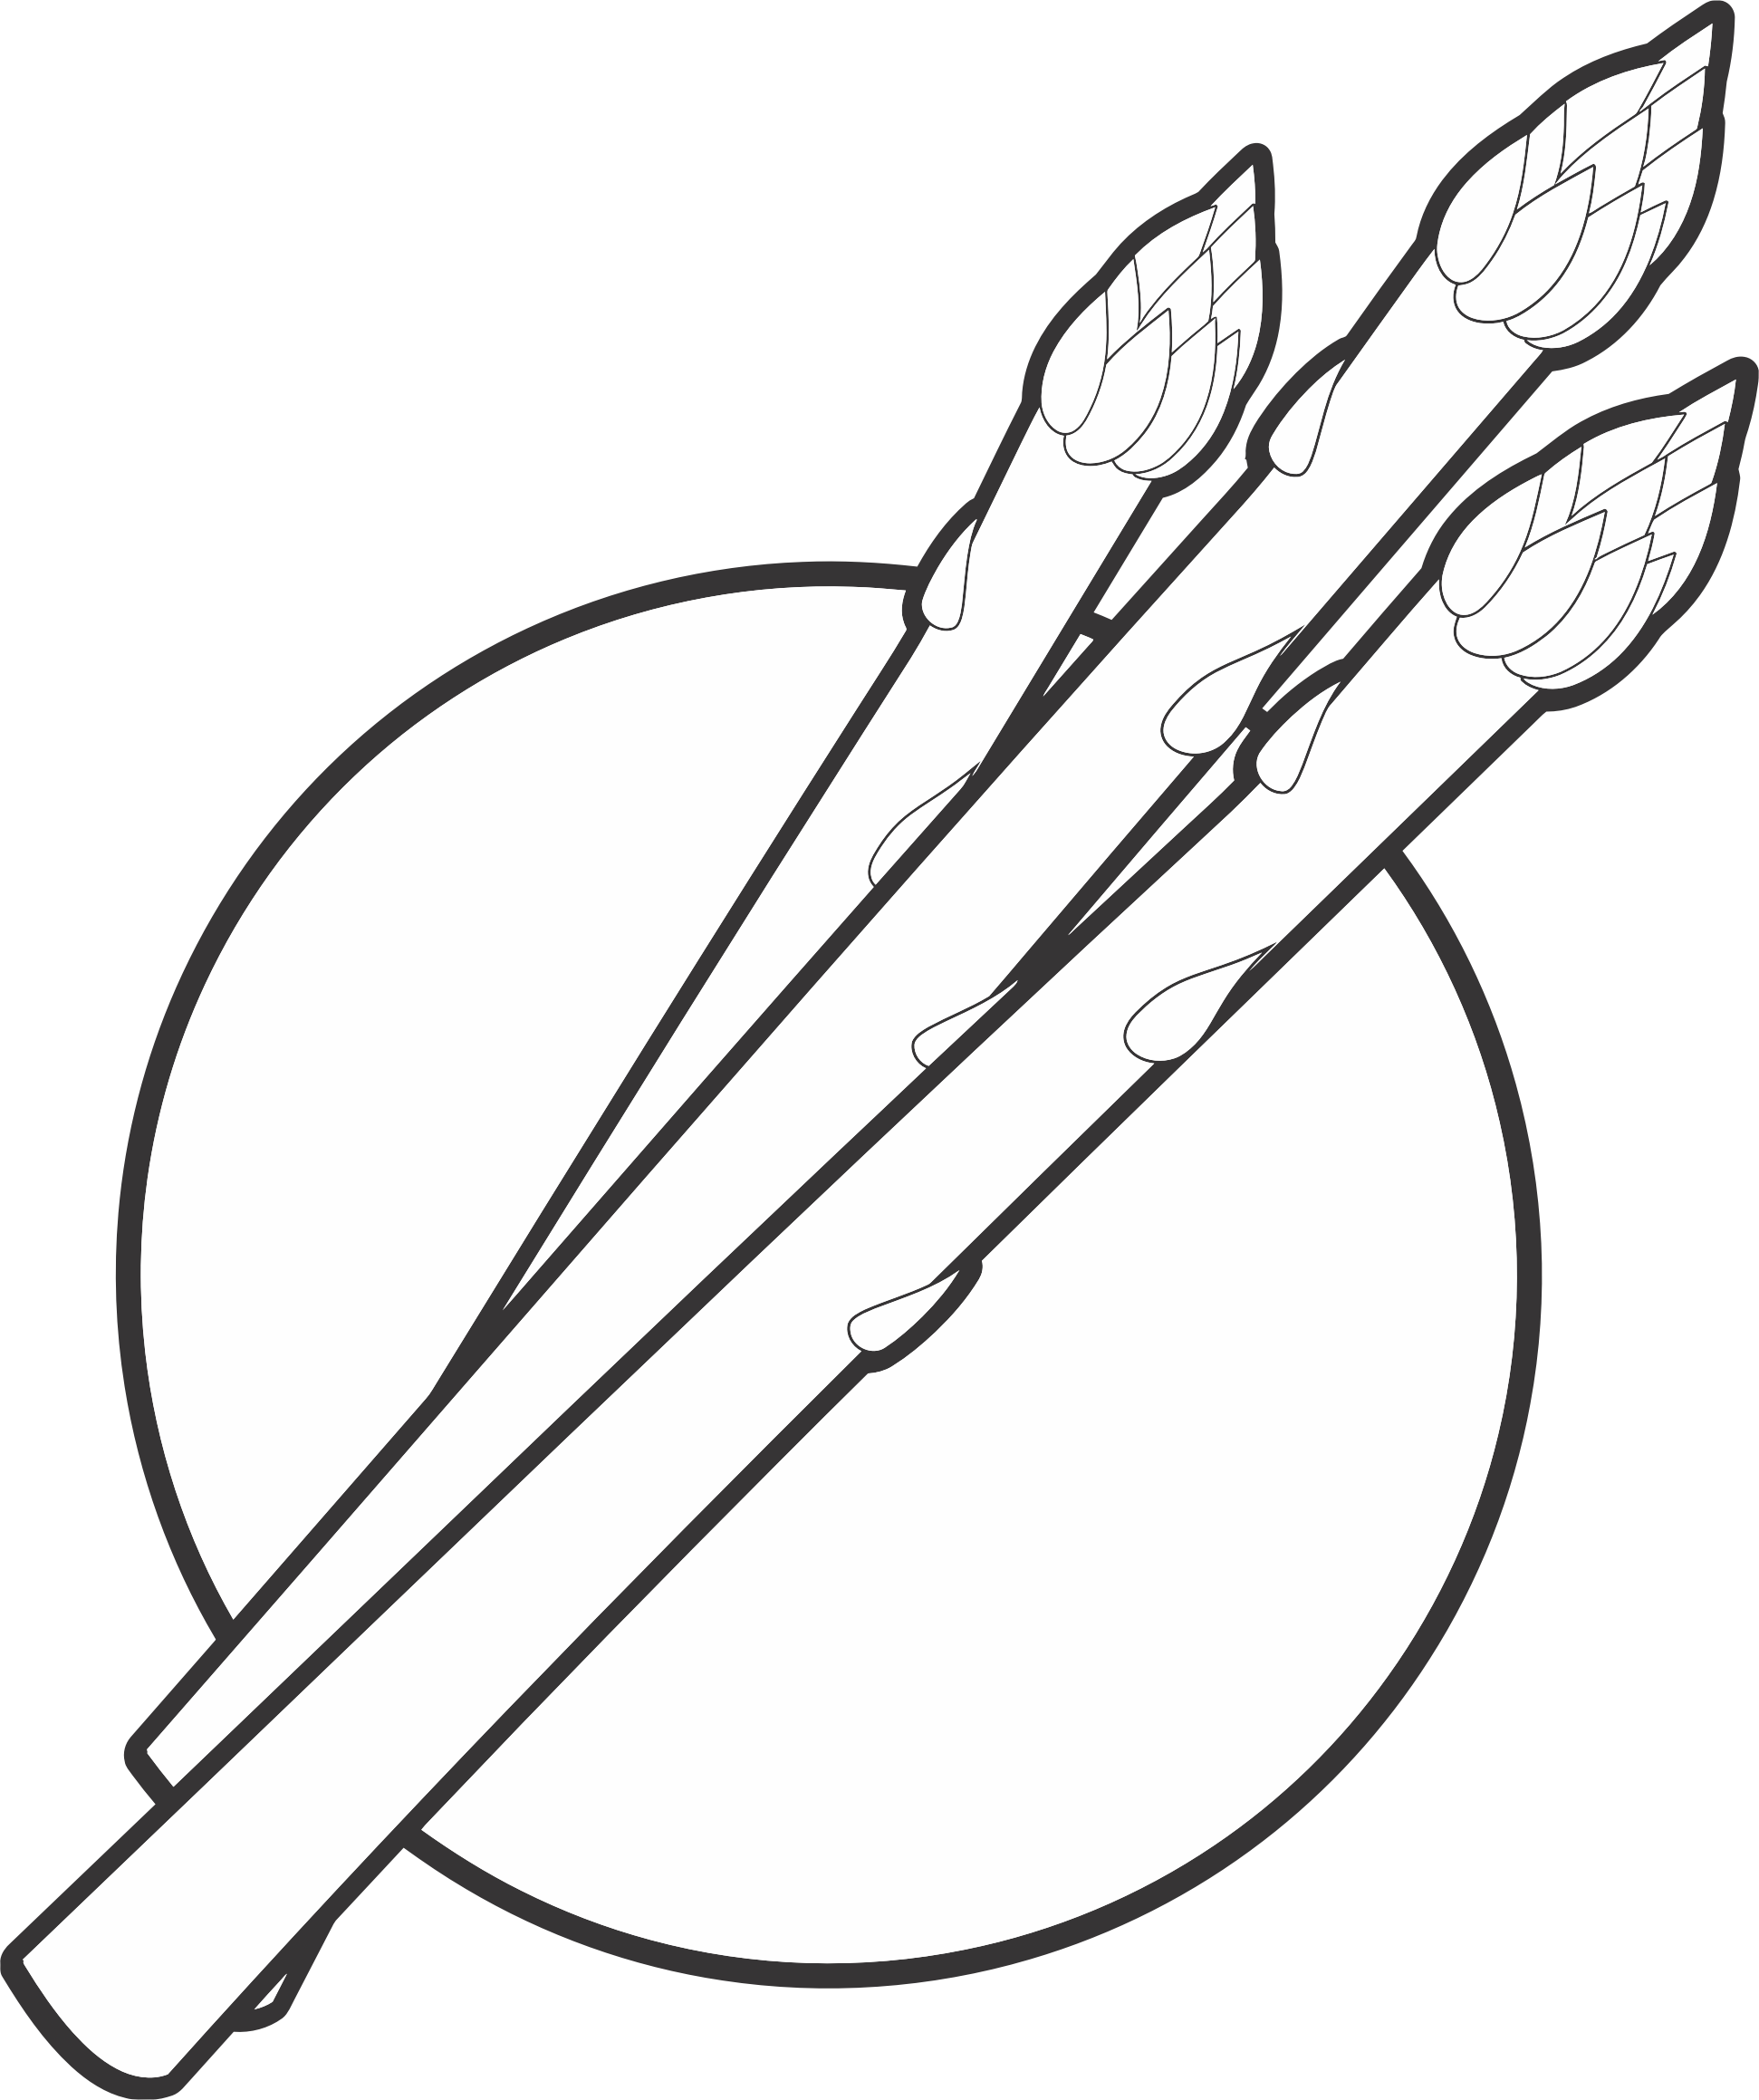 Weapon drawing simple. Clipart asparagus line art